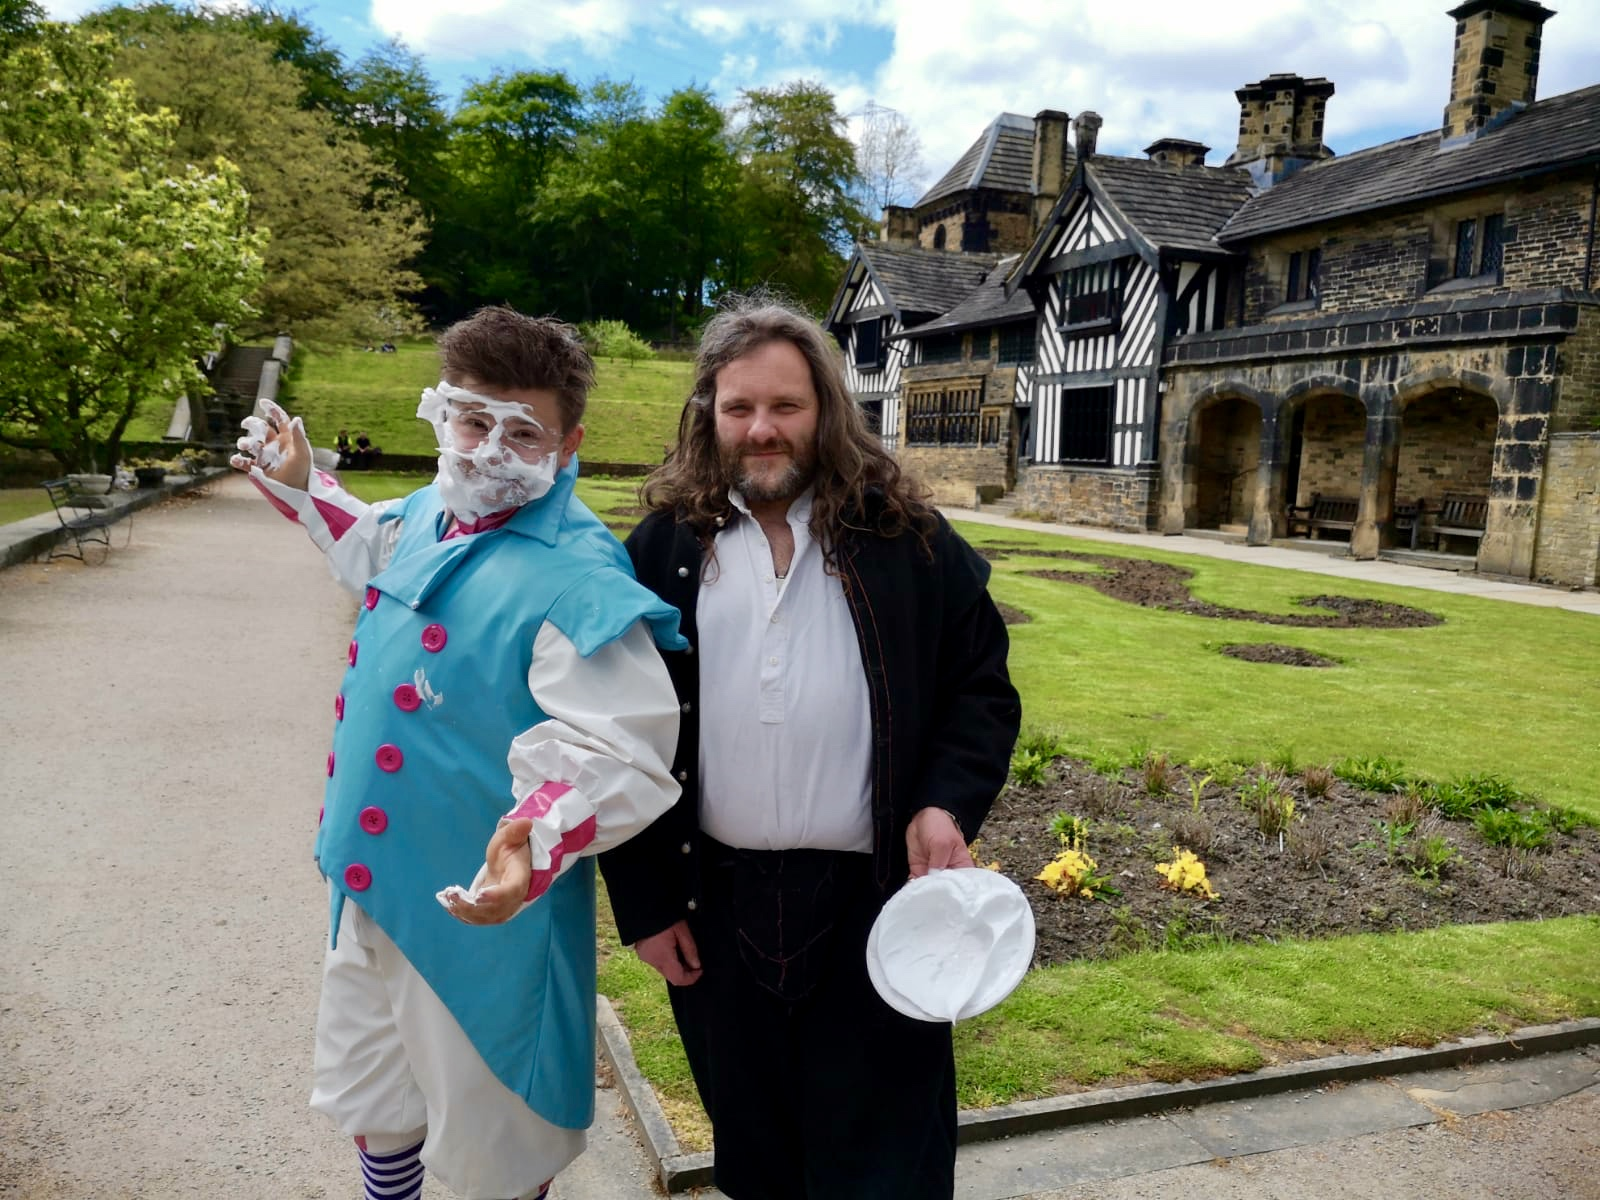 The final visit of the day was to Shibden Hall… and naturally they wanted to play the new game 'let's pie Josh' too!